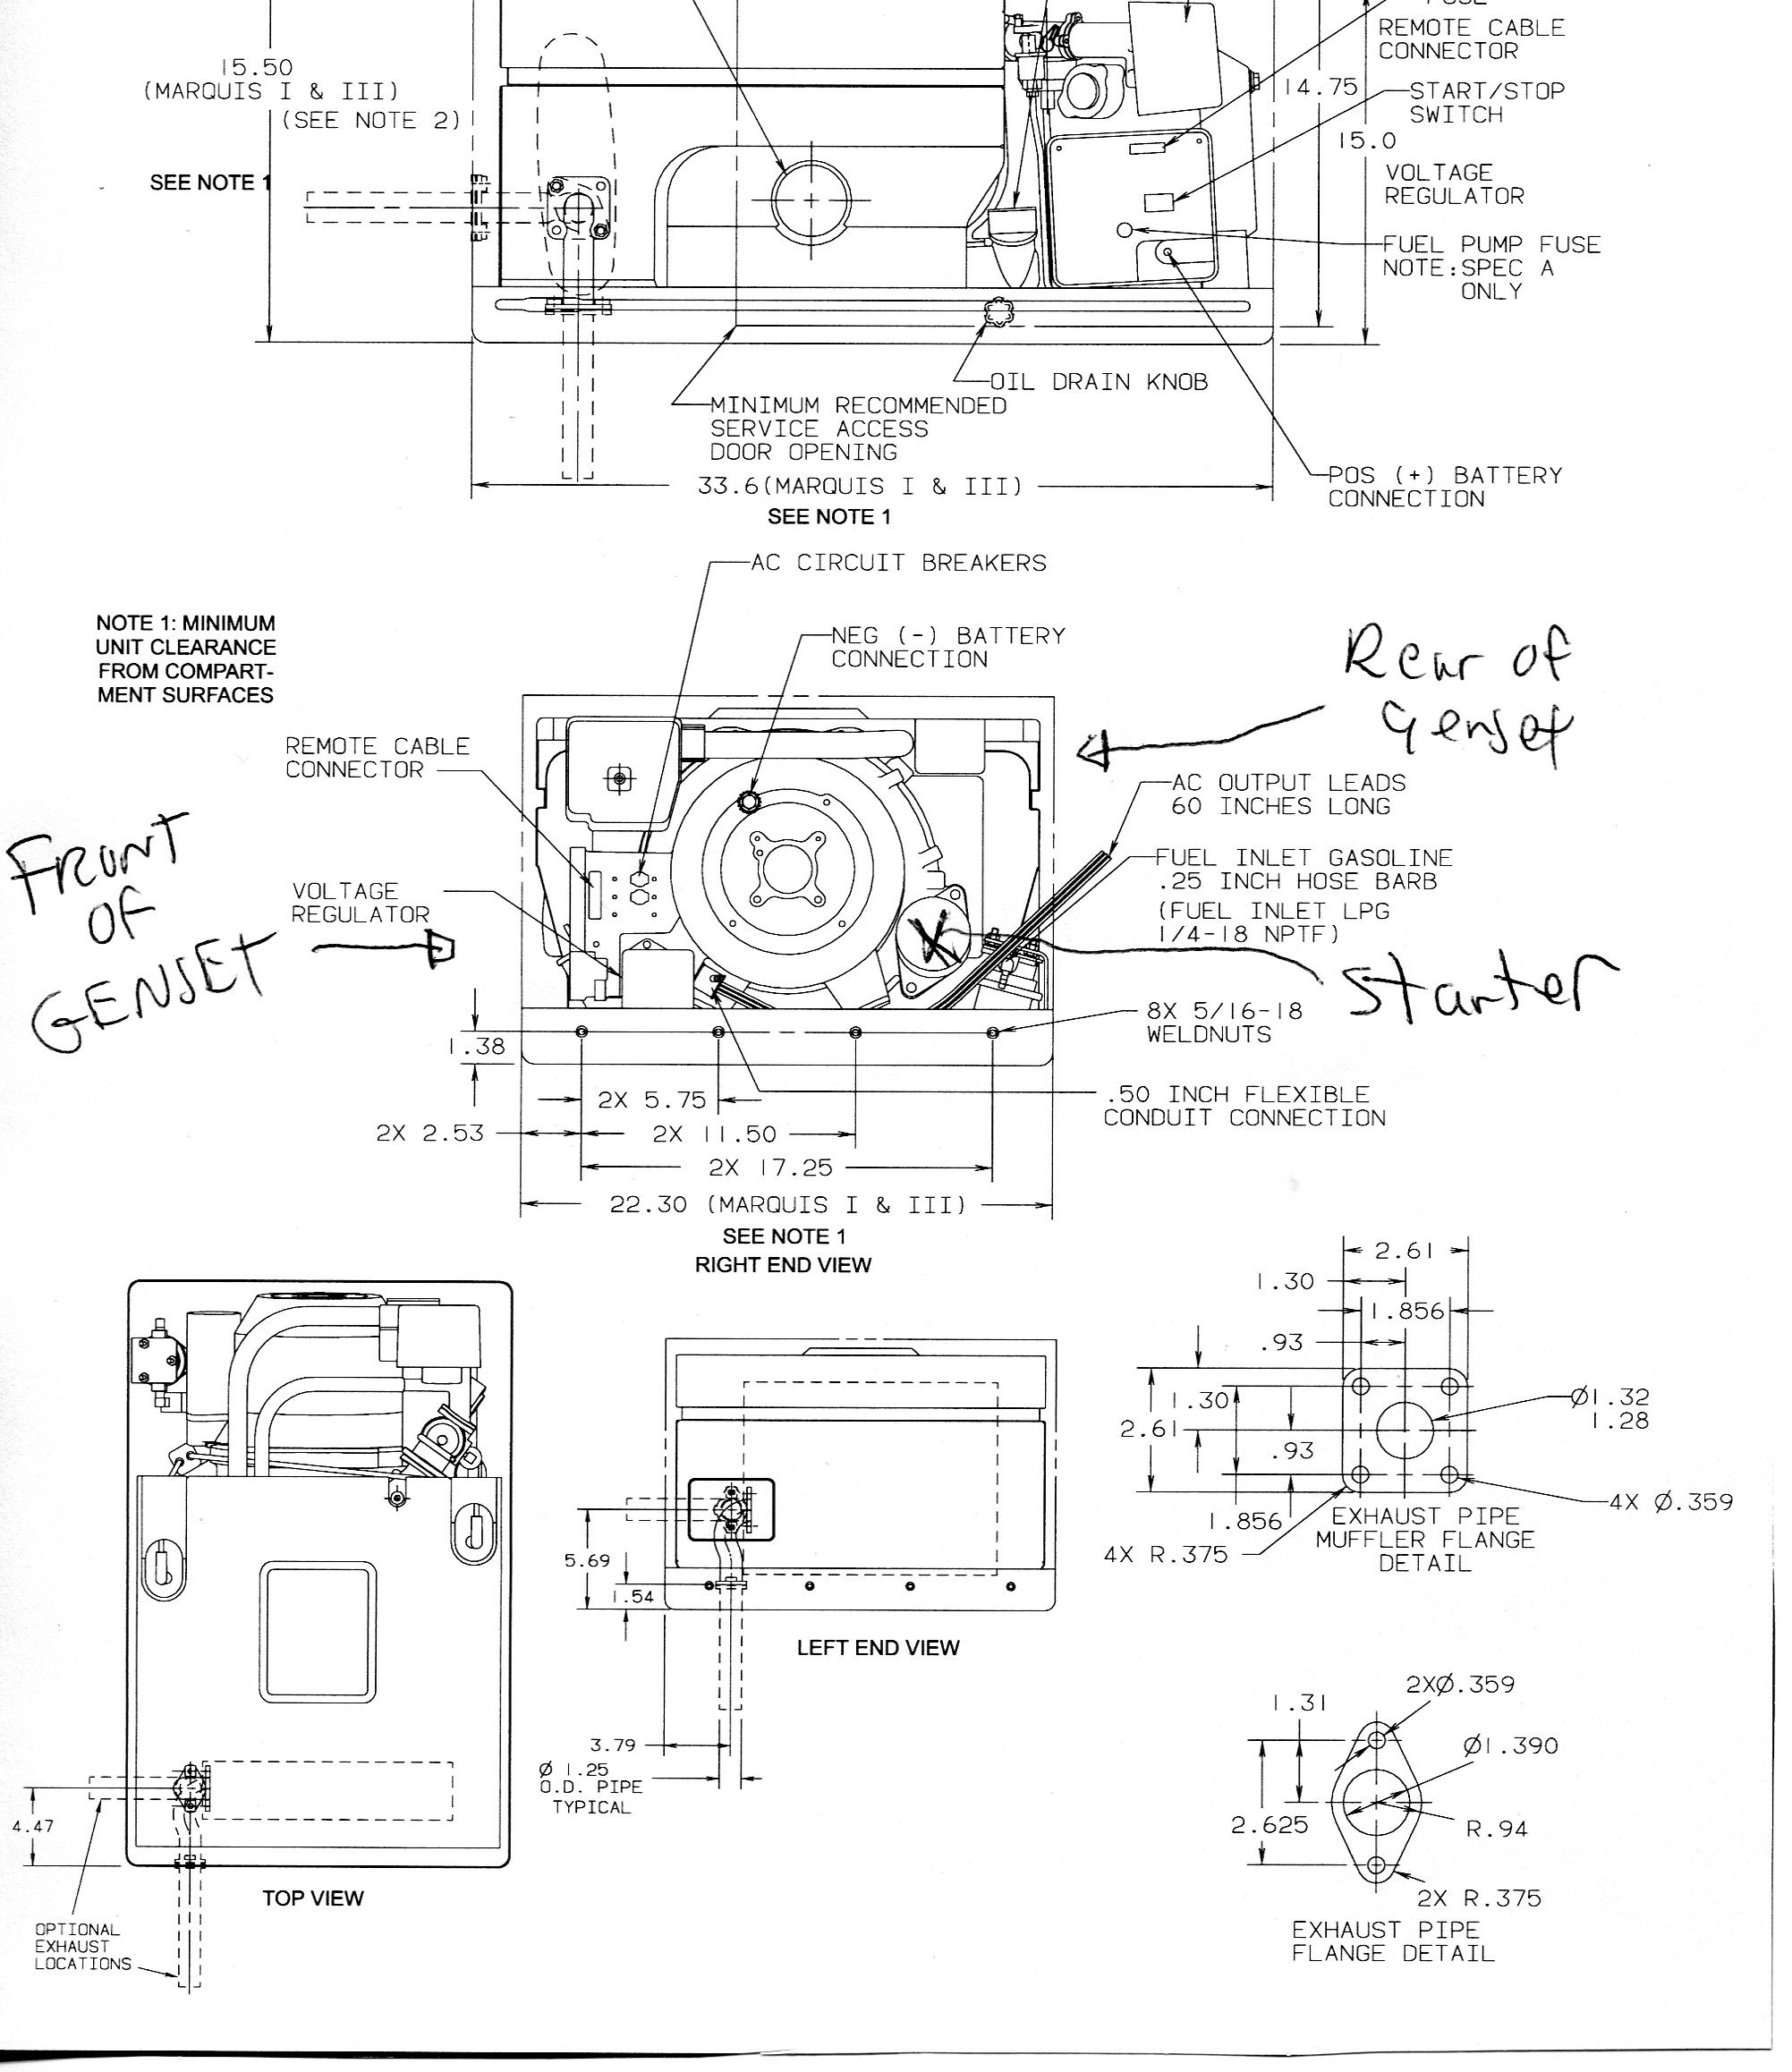 wiring diagram open source 69 mustang radio opensource drawing at getdrawings com free for personal use 2003x2316 electrical house wire home household